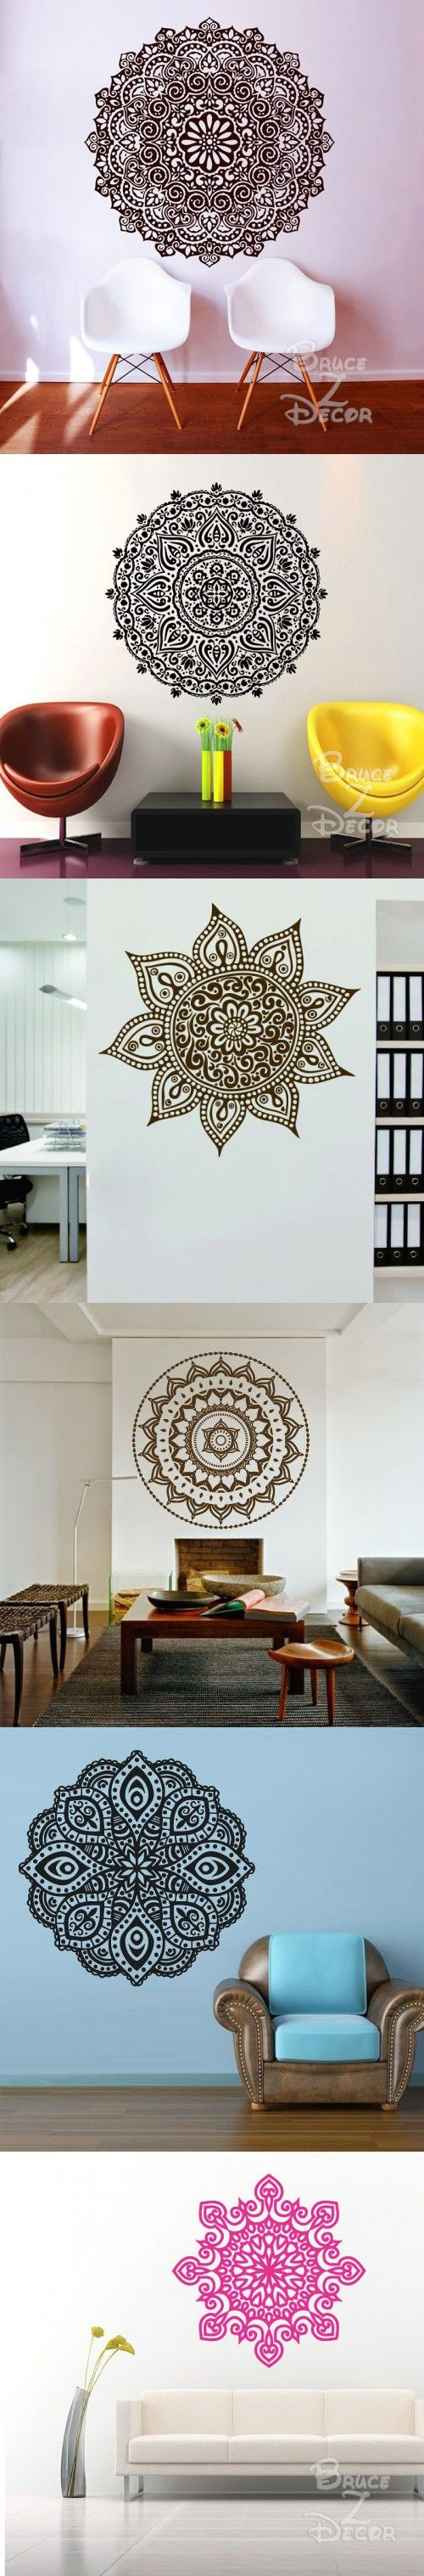 2016 Mandala Mehndi Wall Sticker DIY Large Wall Stickers Home Decor Indian Hindu Buddha Wall Decals Home Decoration